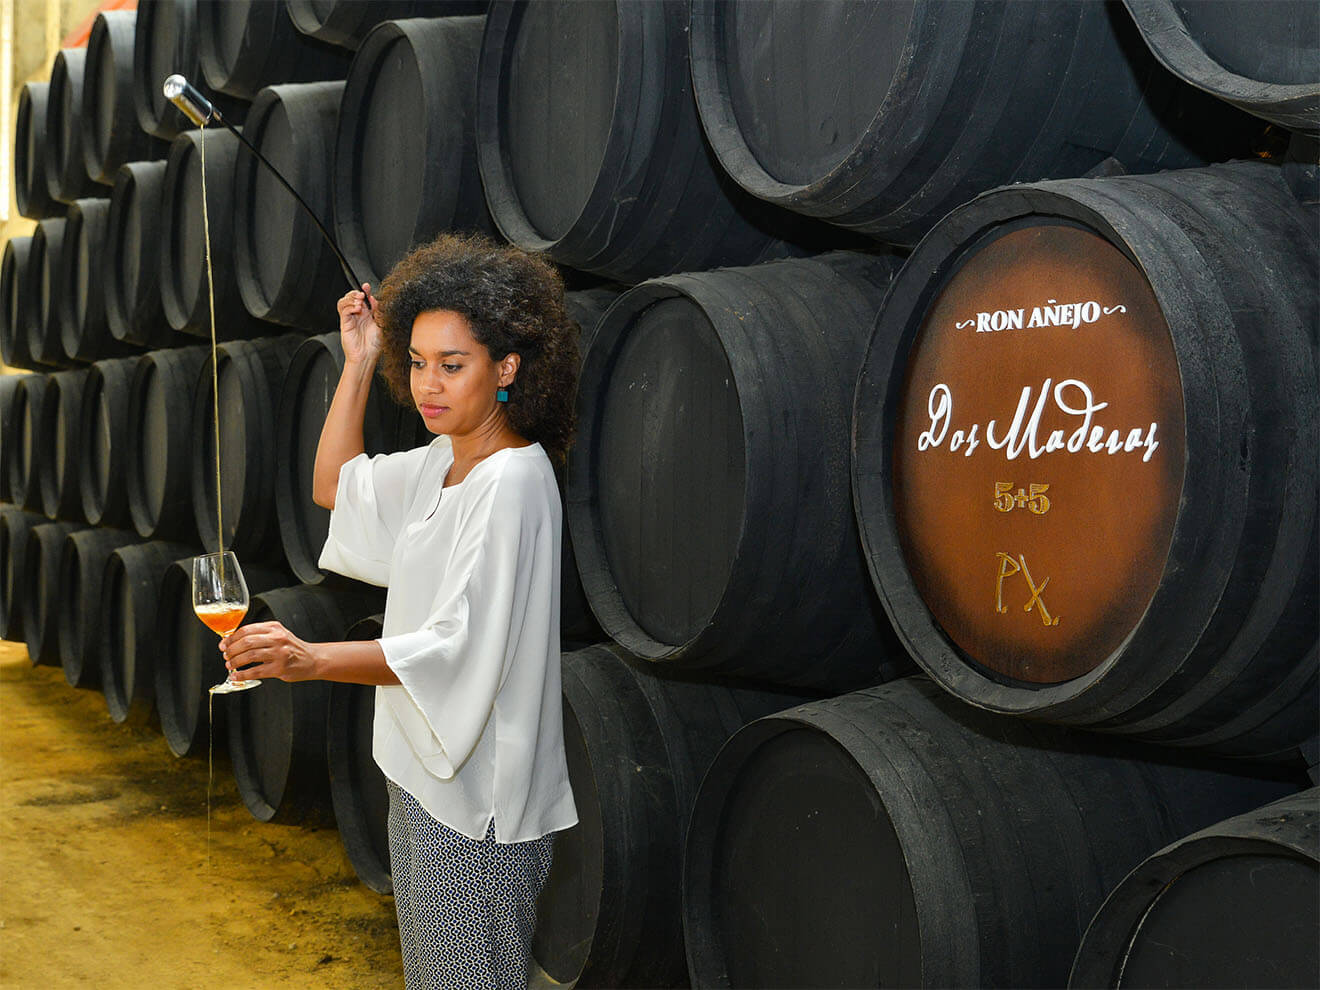 Paola Medina Sheldon - Williams & Humbert Winemaker